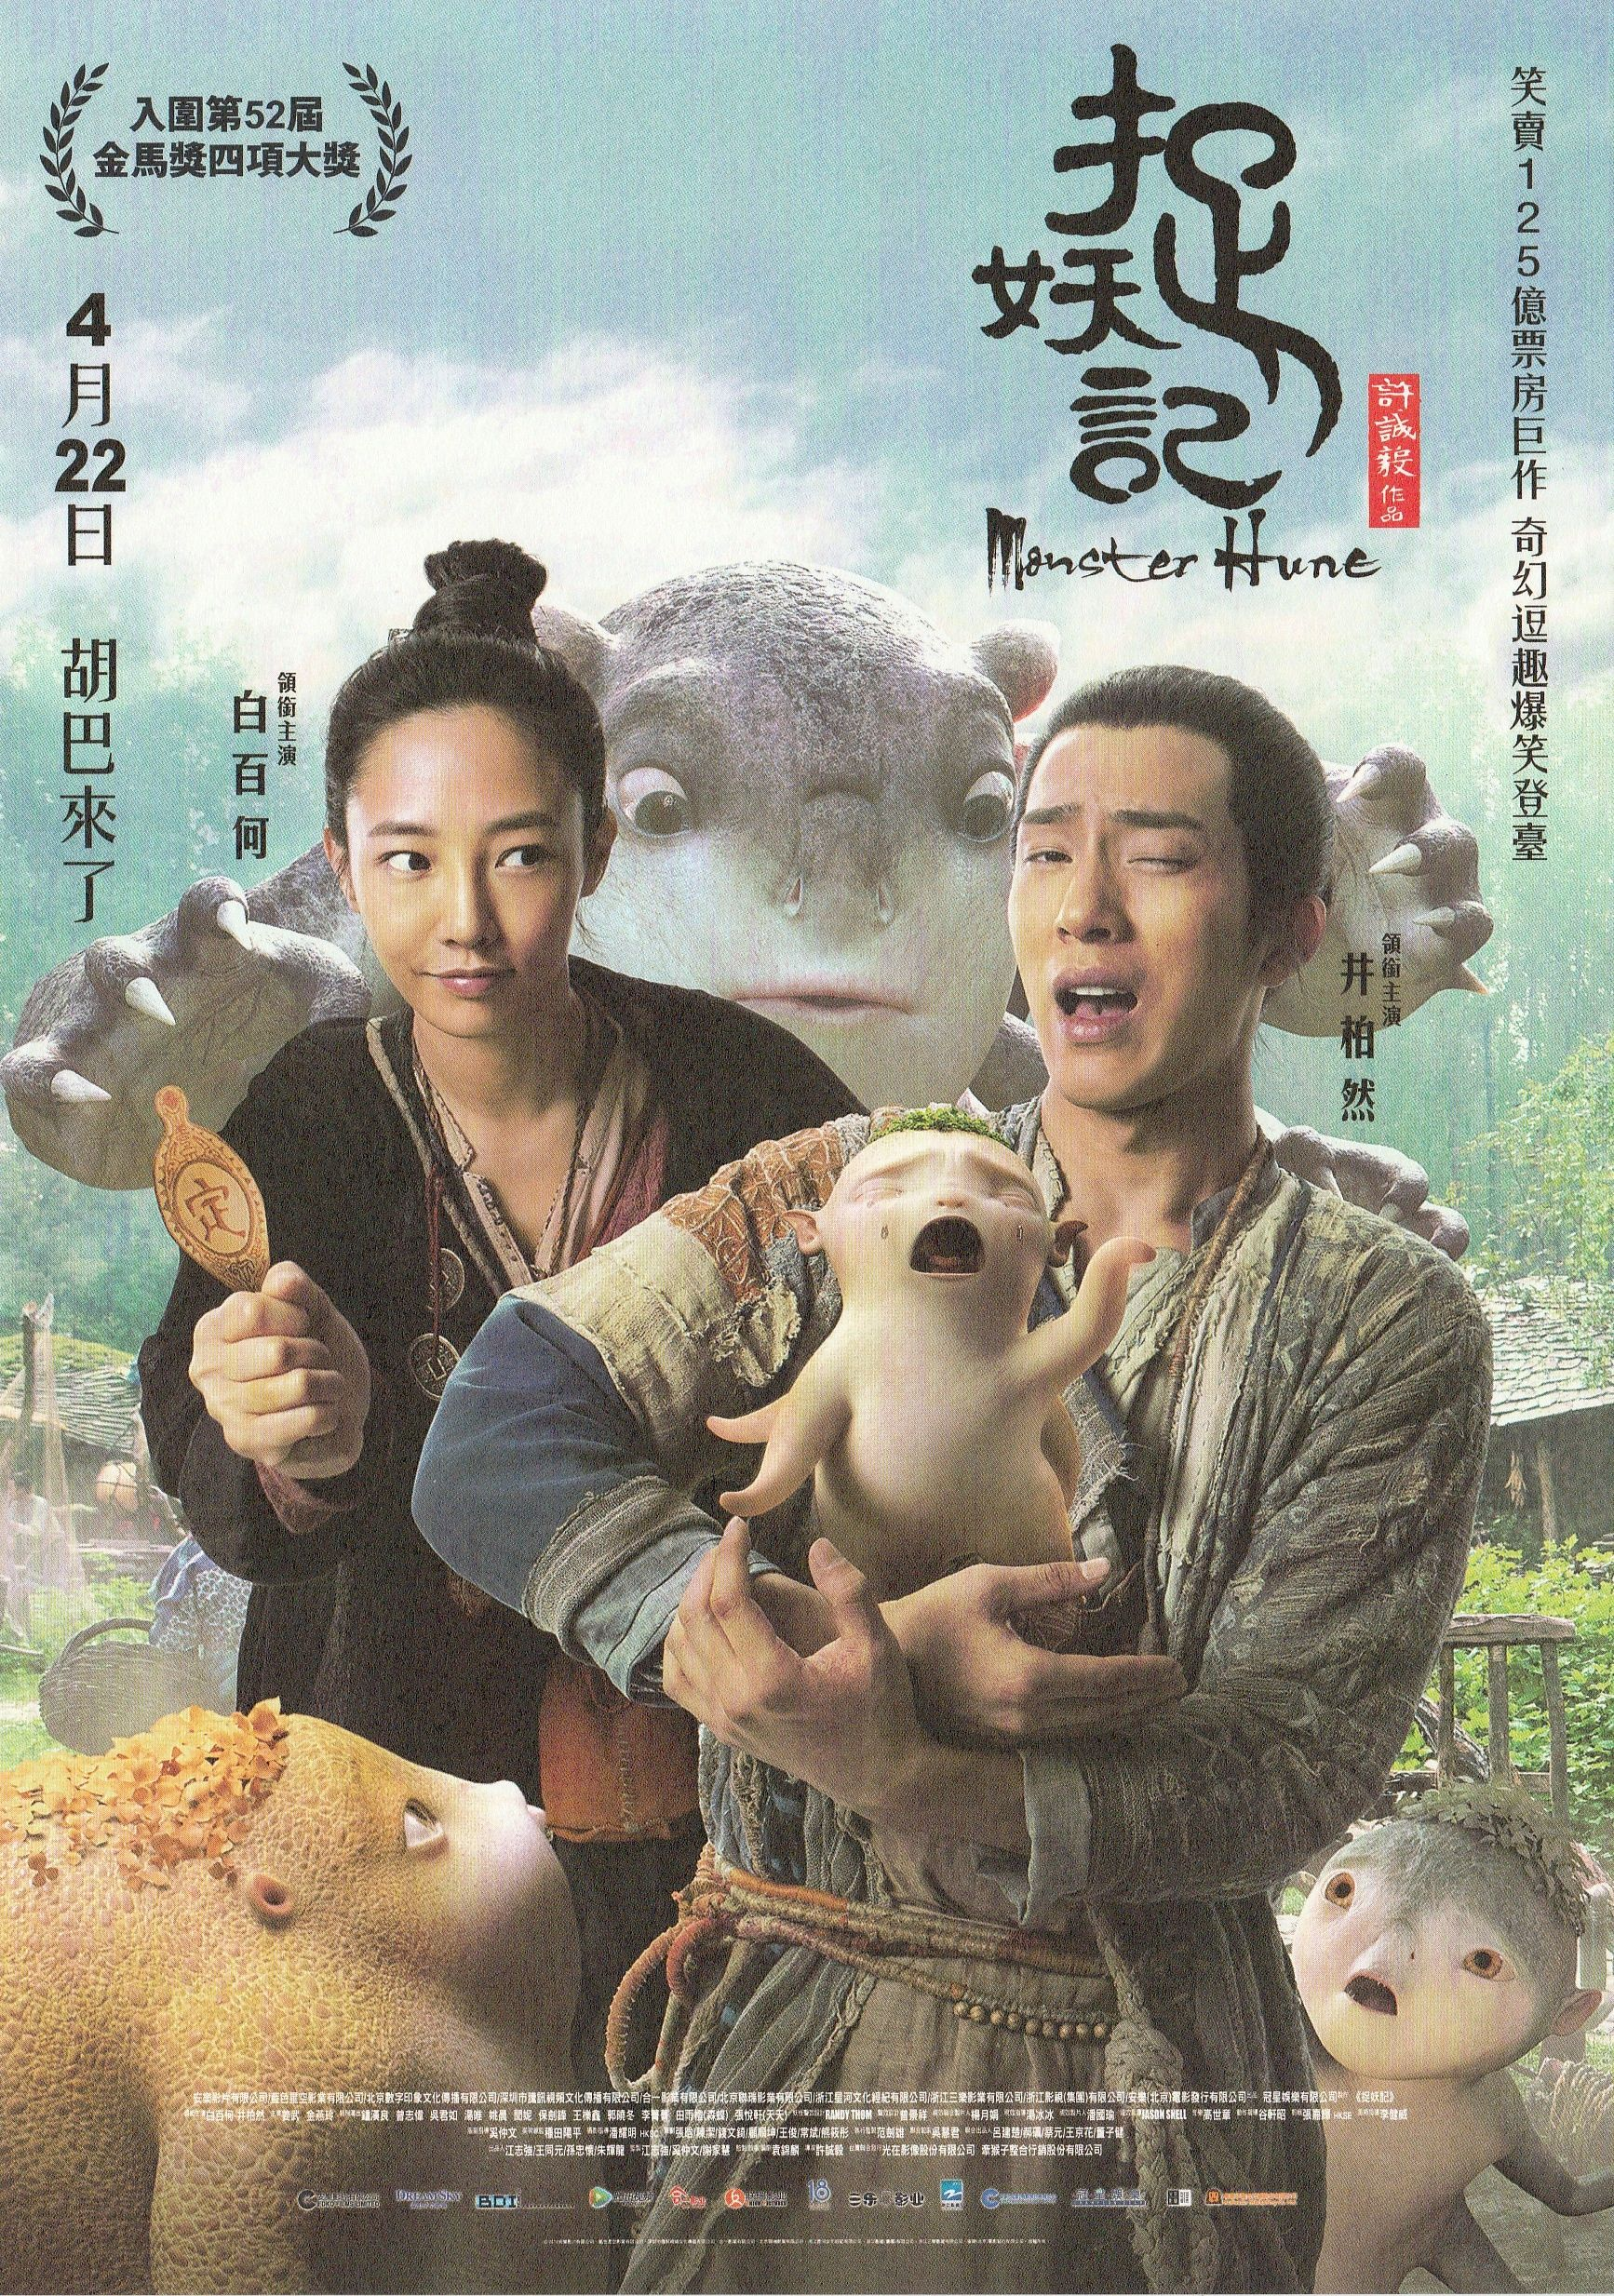 Monster Hunt Issue Date 2016 4 22 Monster Hunt Chinese Movies Cute Creatures